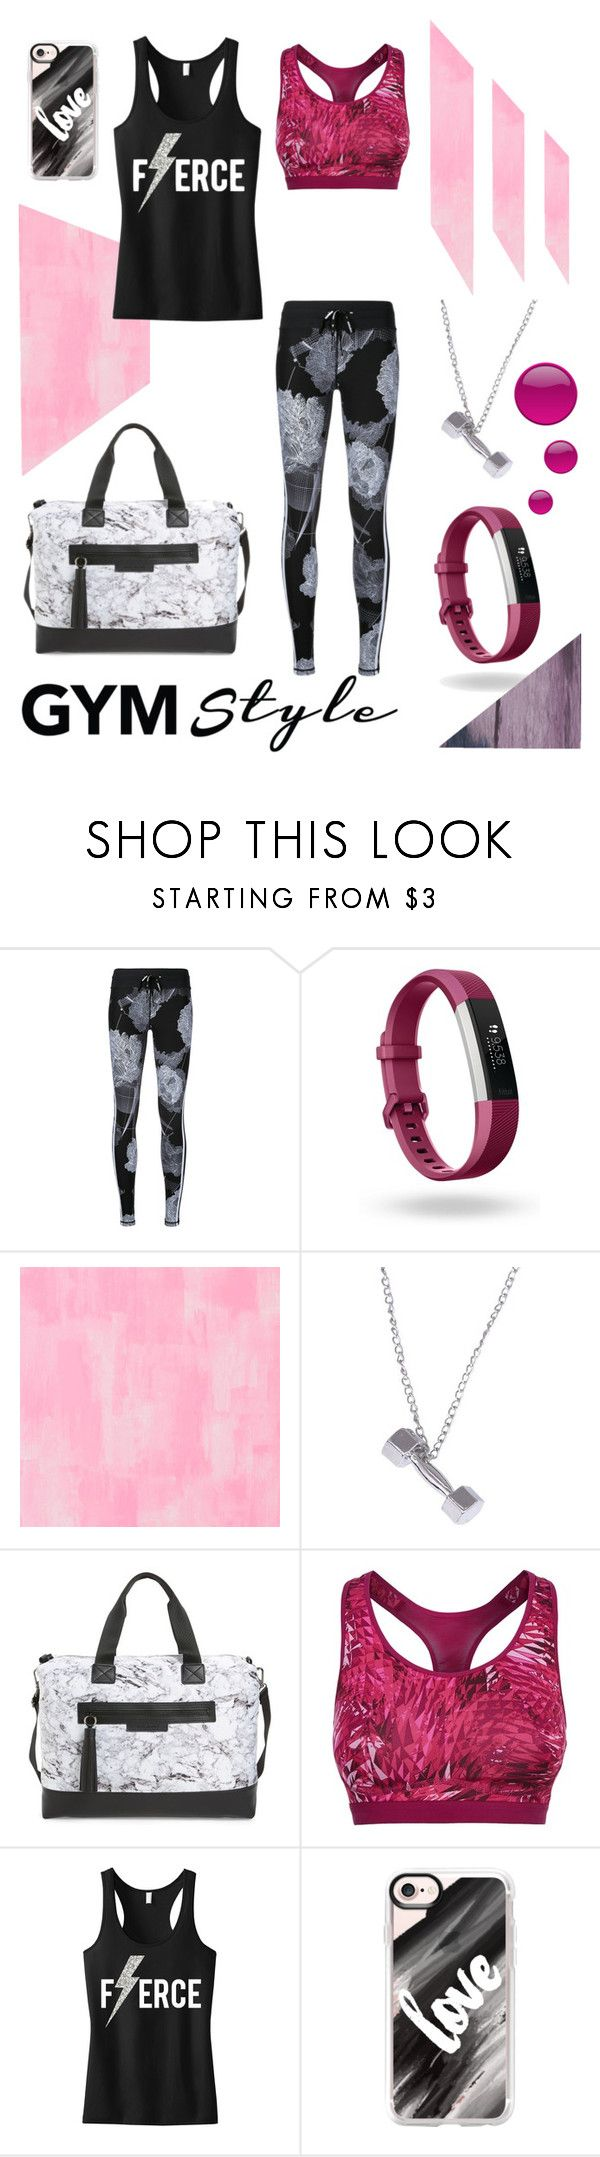 """Gym bae"" by belen-cool-look on Polyvore featuring moda, The Upside, Fitbit, Designers Guild, Balsa 201, NIKE y Casetify"